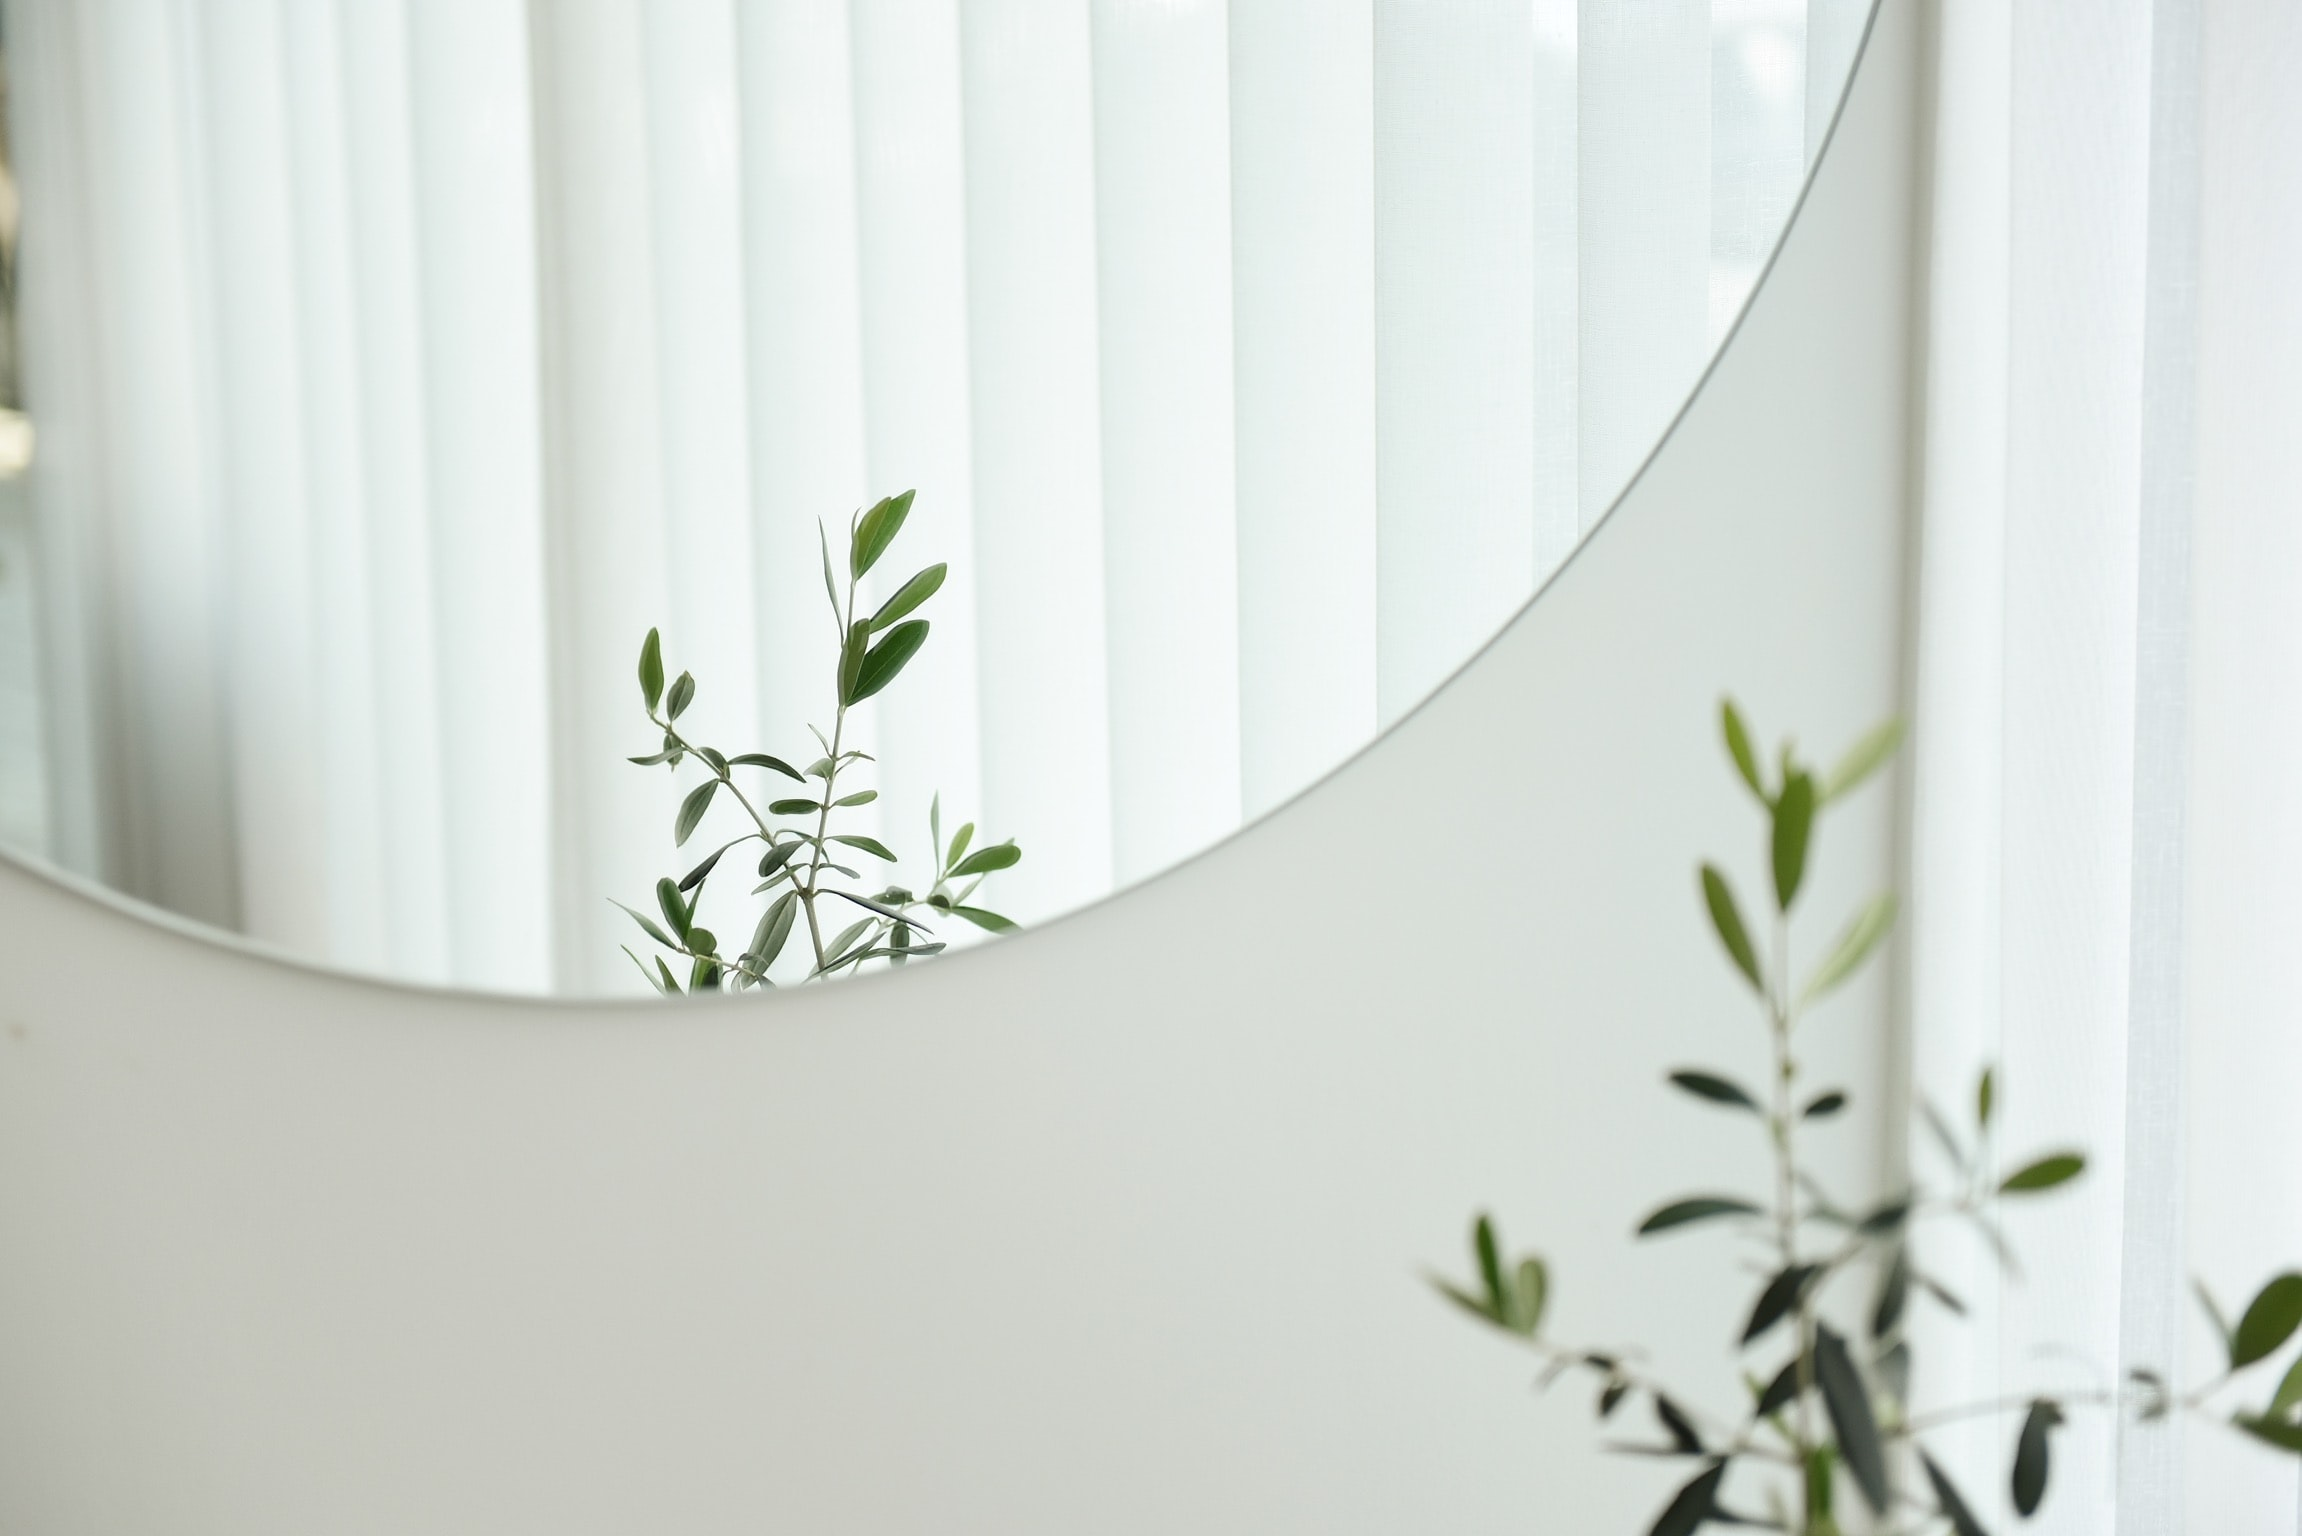 Circular mirror on a white wall with a plant reflected in it